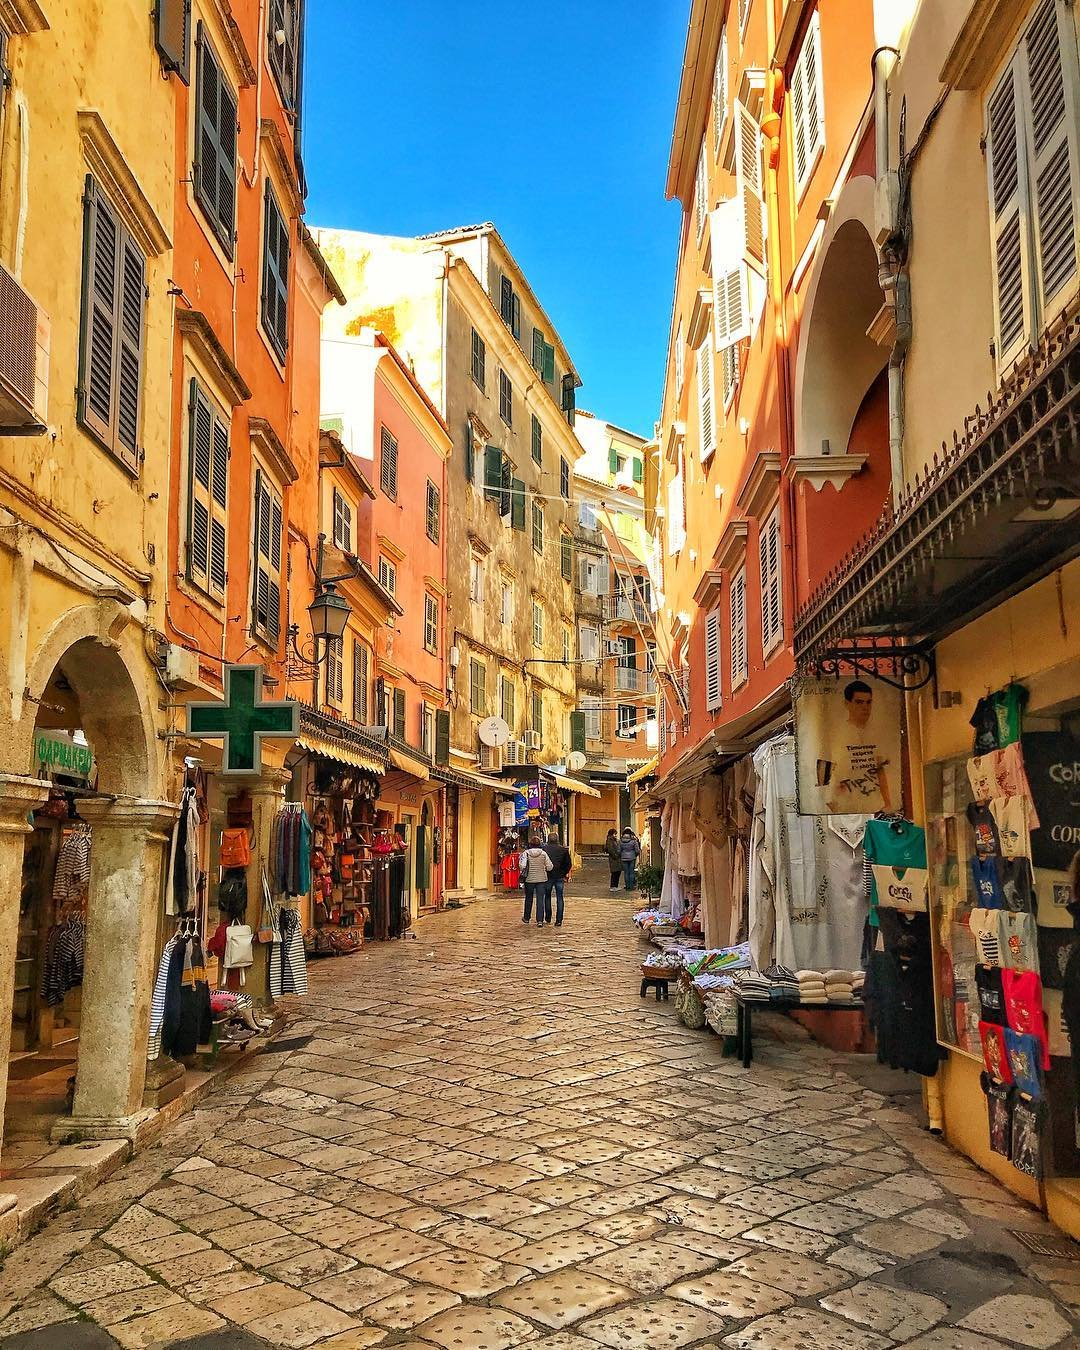 The Old Town of Corfu is a product of the island's Greek, British, French, Ottoman and Venetian past. How many influences can you find here? 💫 #DiscoverGreece Photo by @pan_kli (via instagram.com/pan_kli) ✔️